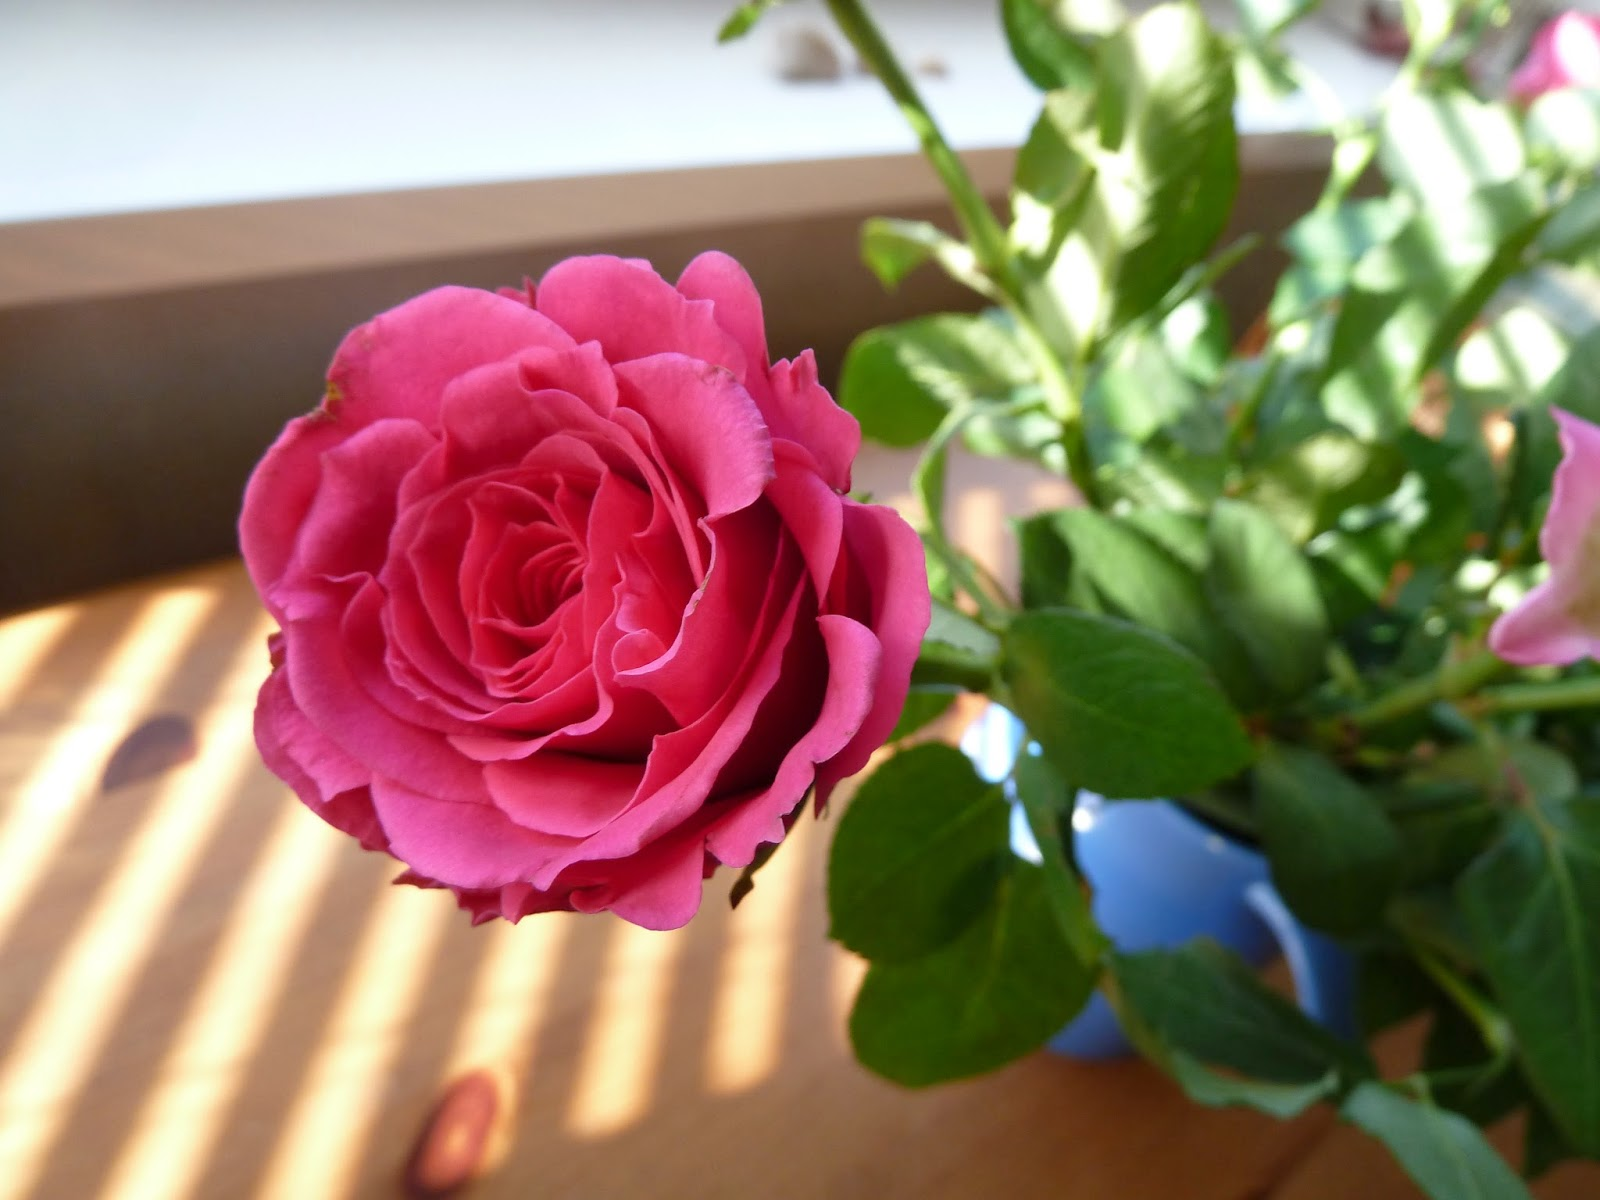 Frilly pink rose against stripes of light